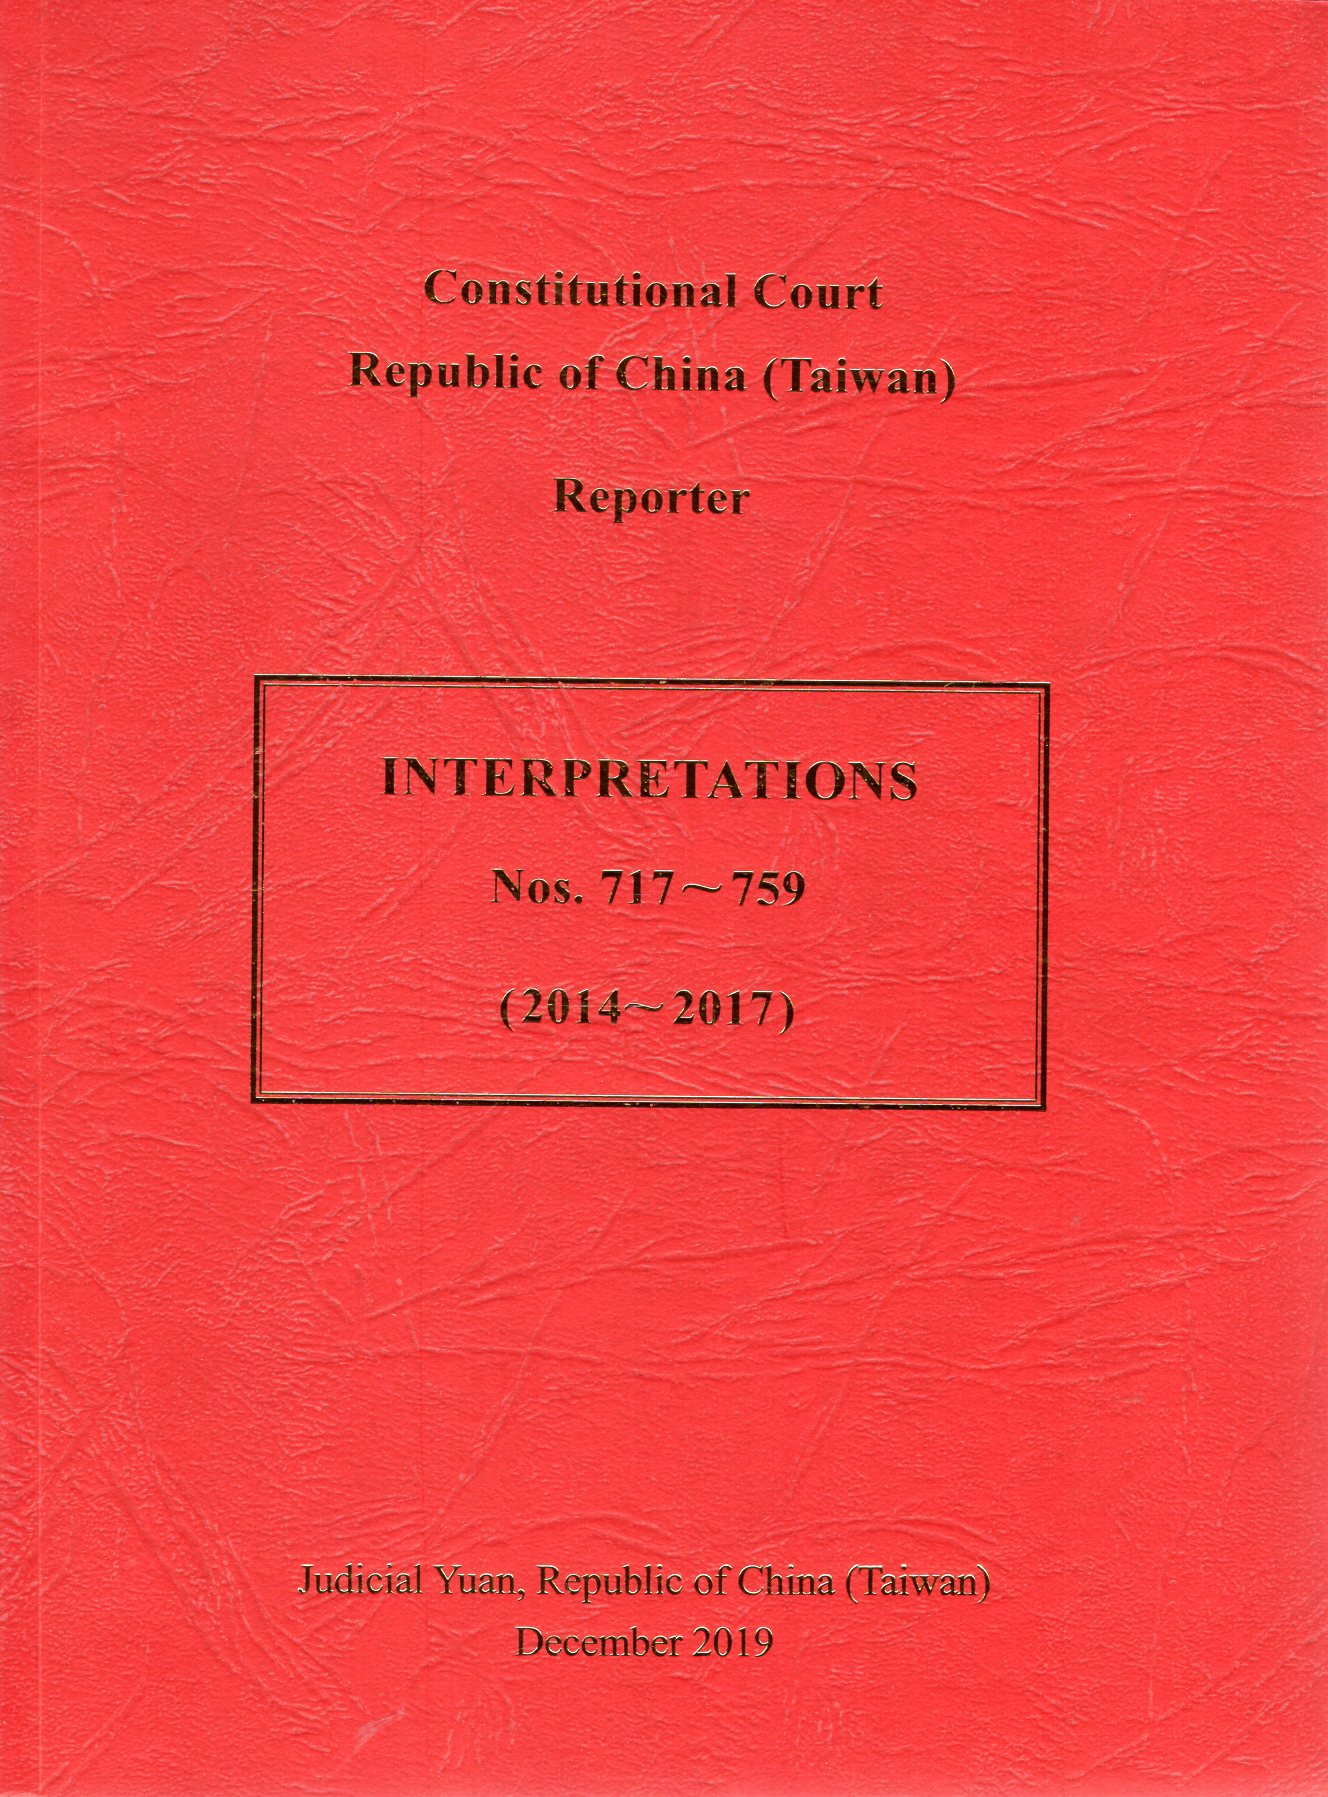 Republic of China (Taiwan) constitutional court reporter interpretations Nos.717-759 (2014-2017)